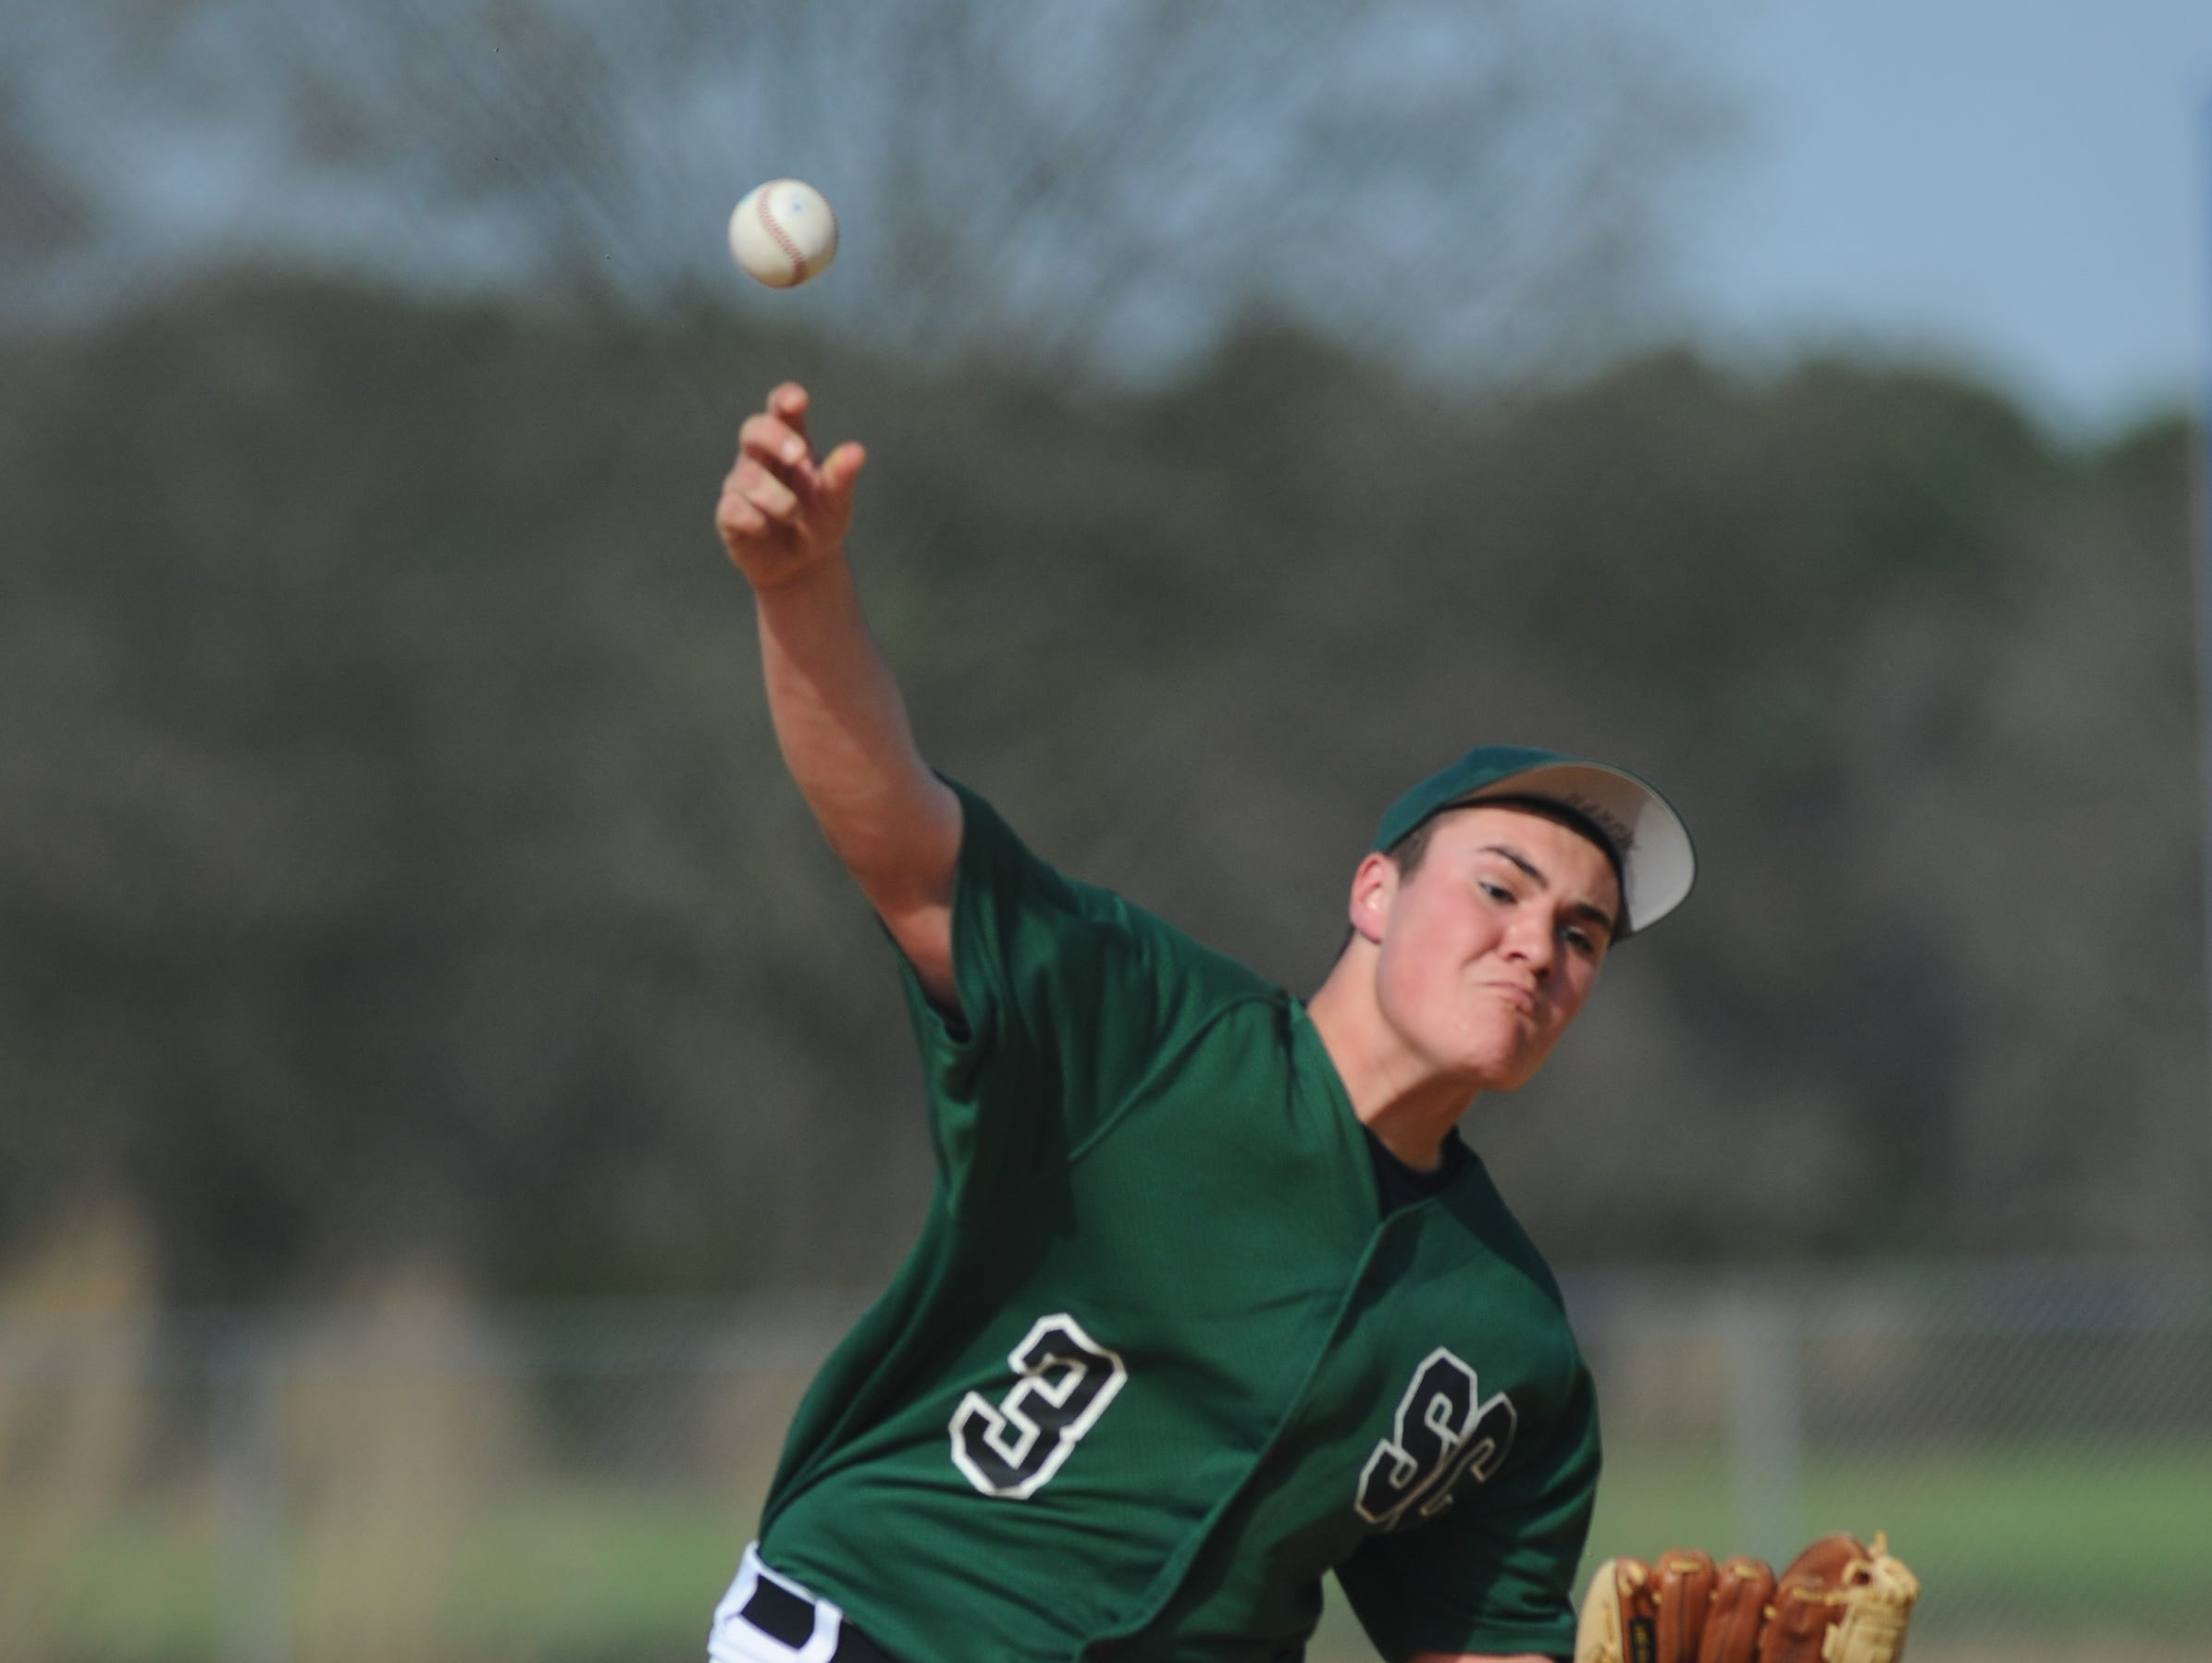 Salisbury Christian's Chase Murphy collected two hits and was part of a two pitcher platoon as the Jaguars won their ninth straight PACC Championship on Thursday.